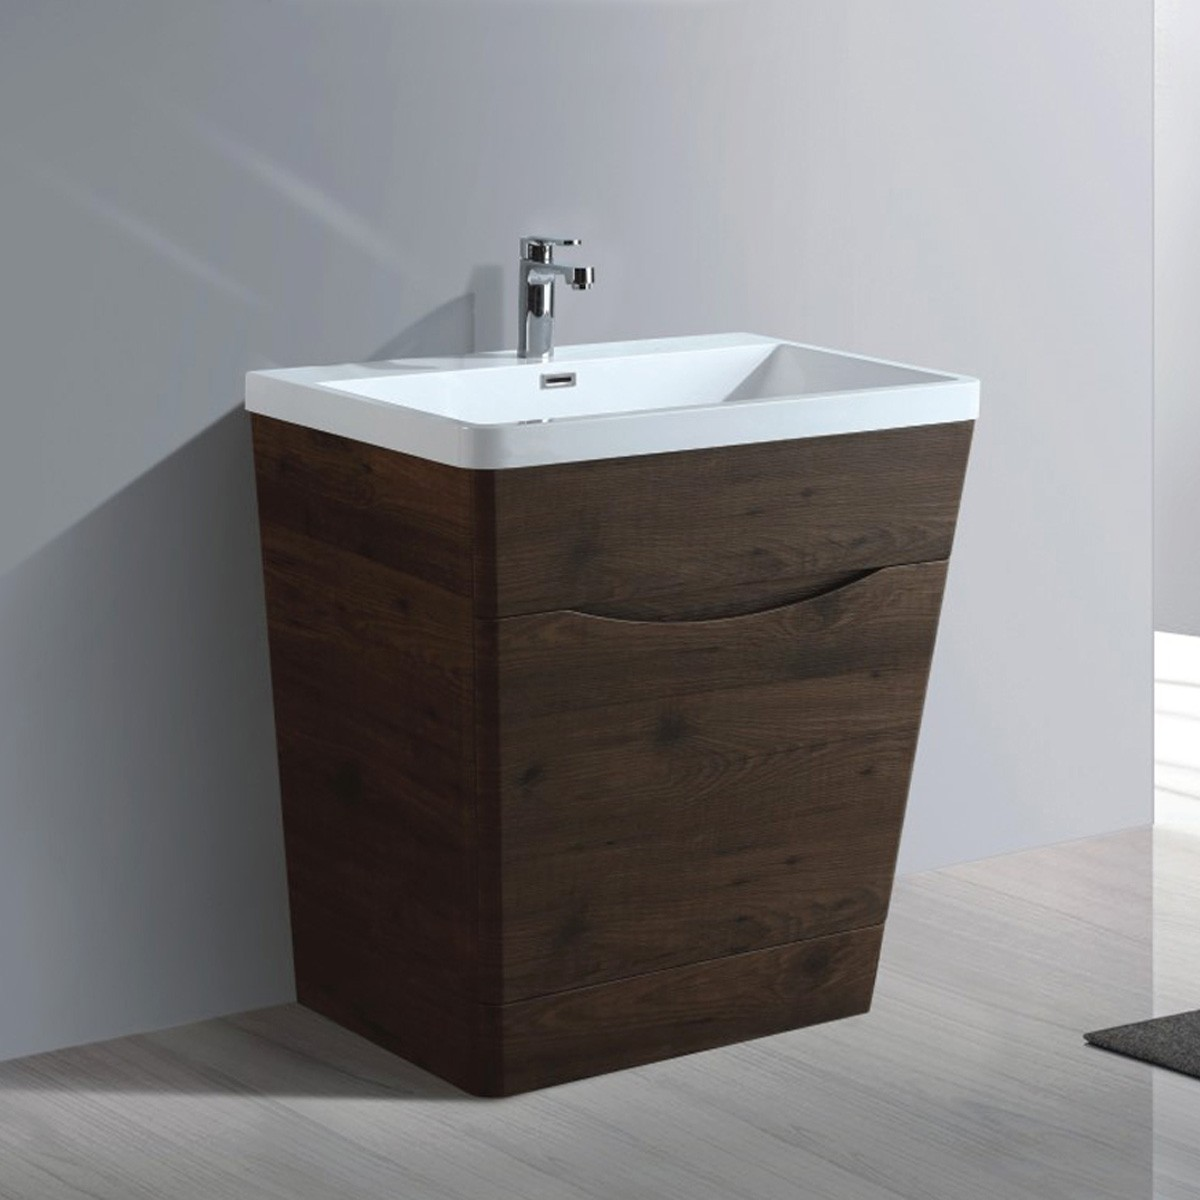 32 In. Bathroom Vanity with Basin (MY8001-V)